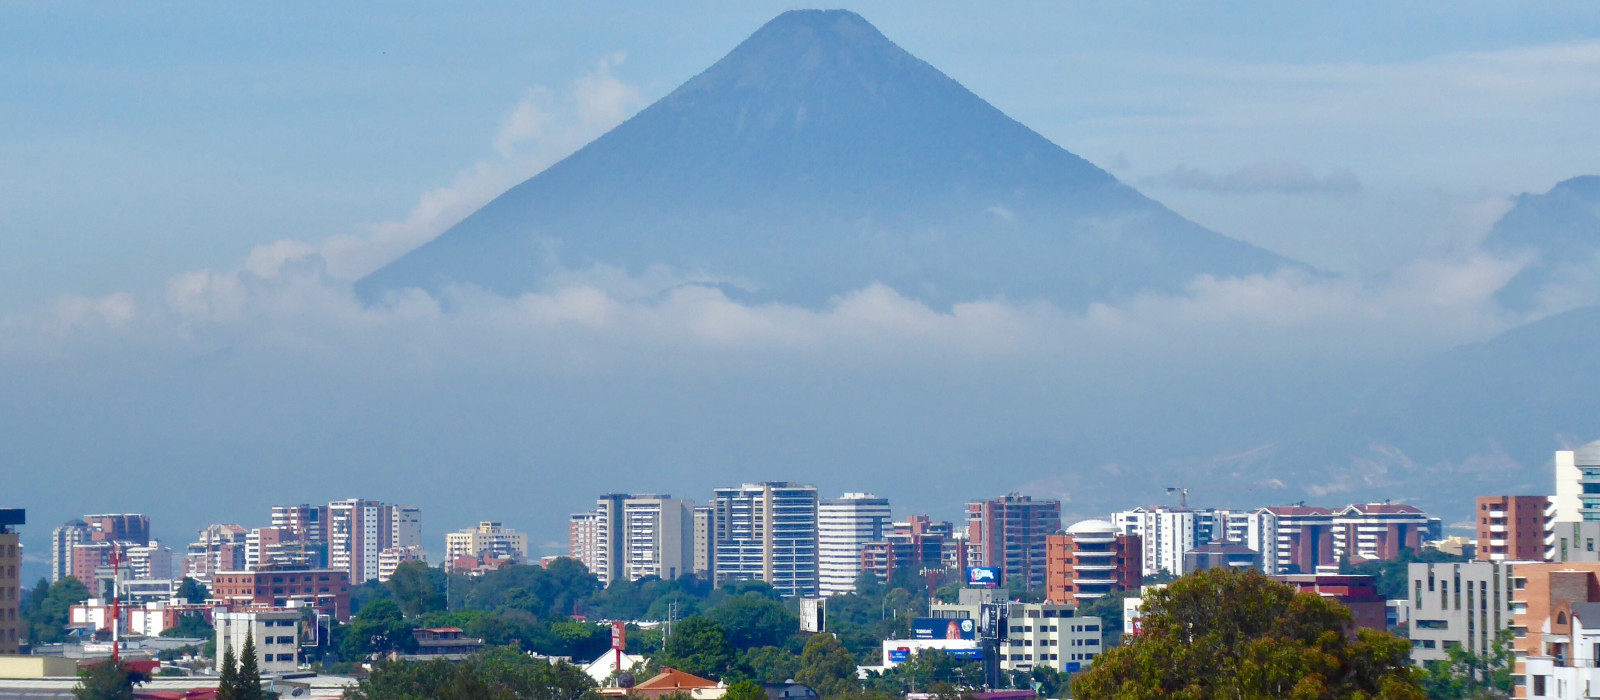 A low cloud base covers part of Fuego volcano in Guatemala City, capital of Guatemala